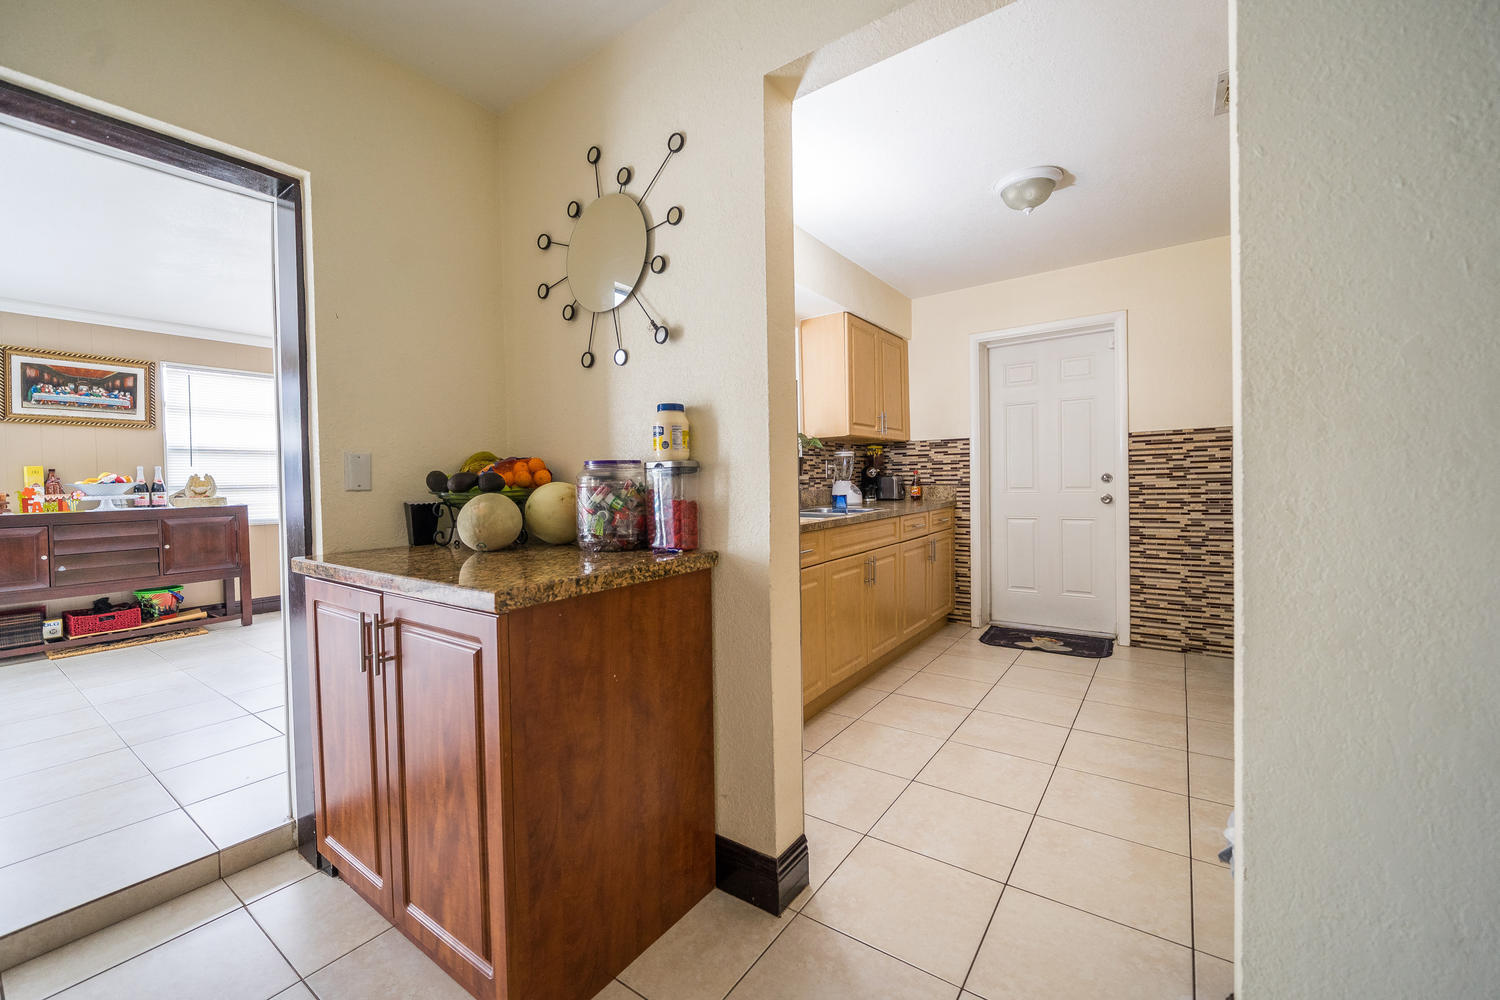 913 Montego Drive West Palm Beach, FL 33415 small photo 5